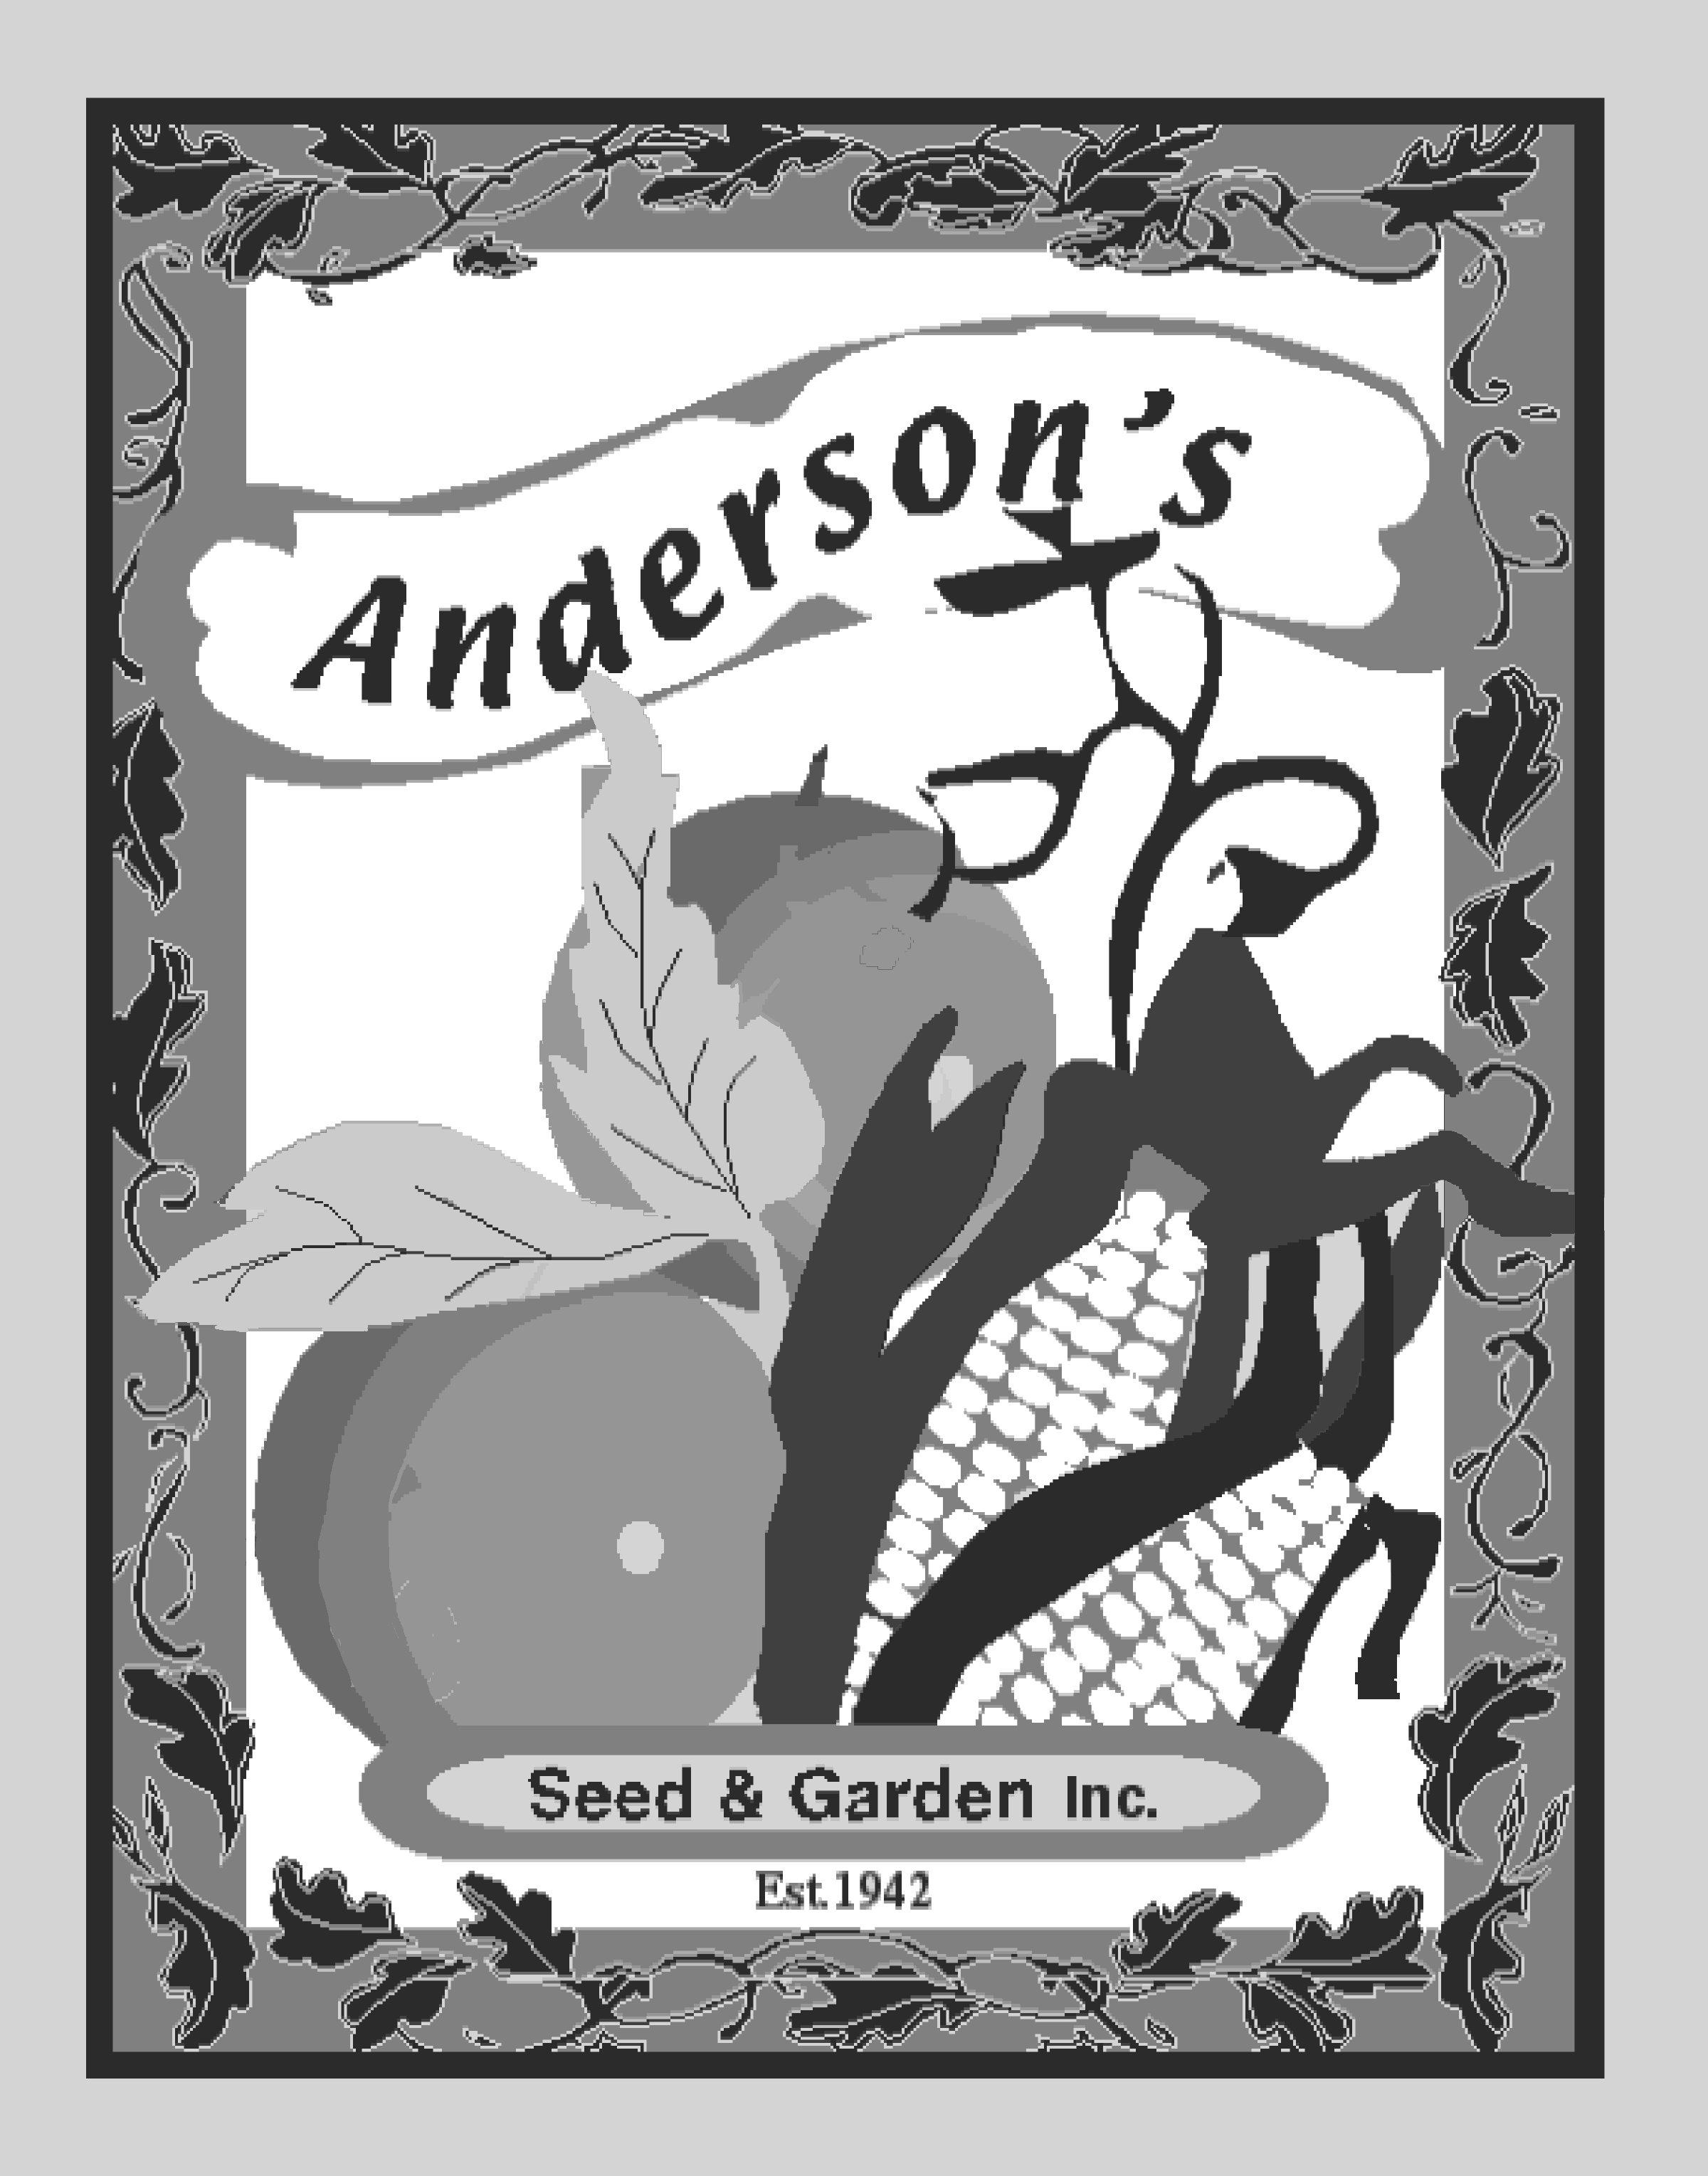 Heirloom Marjoram Seed 1 oz.